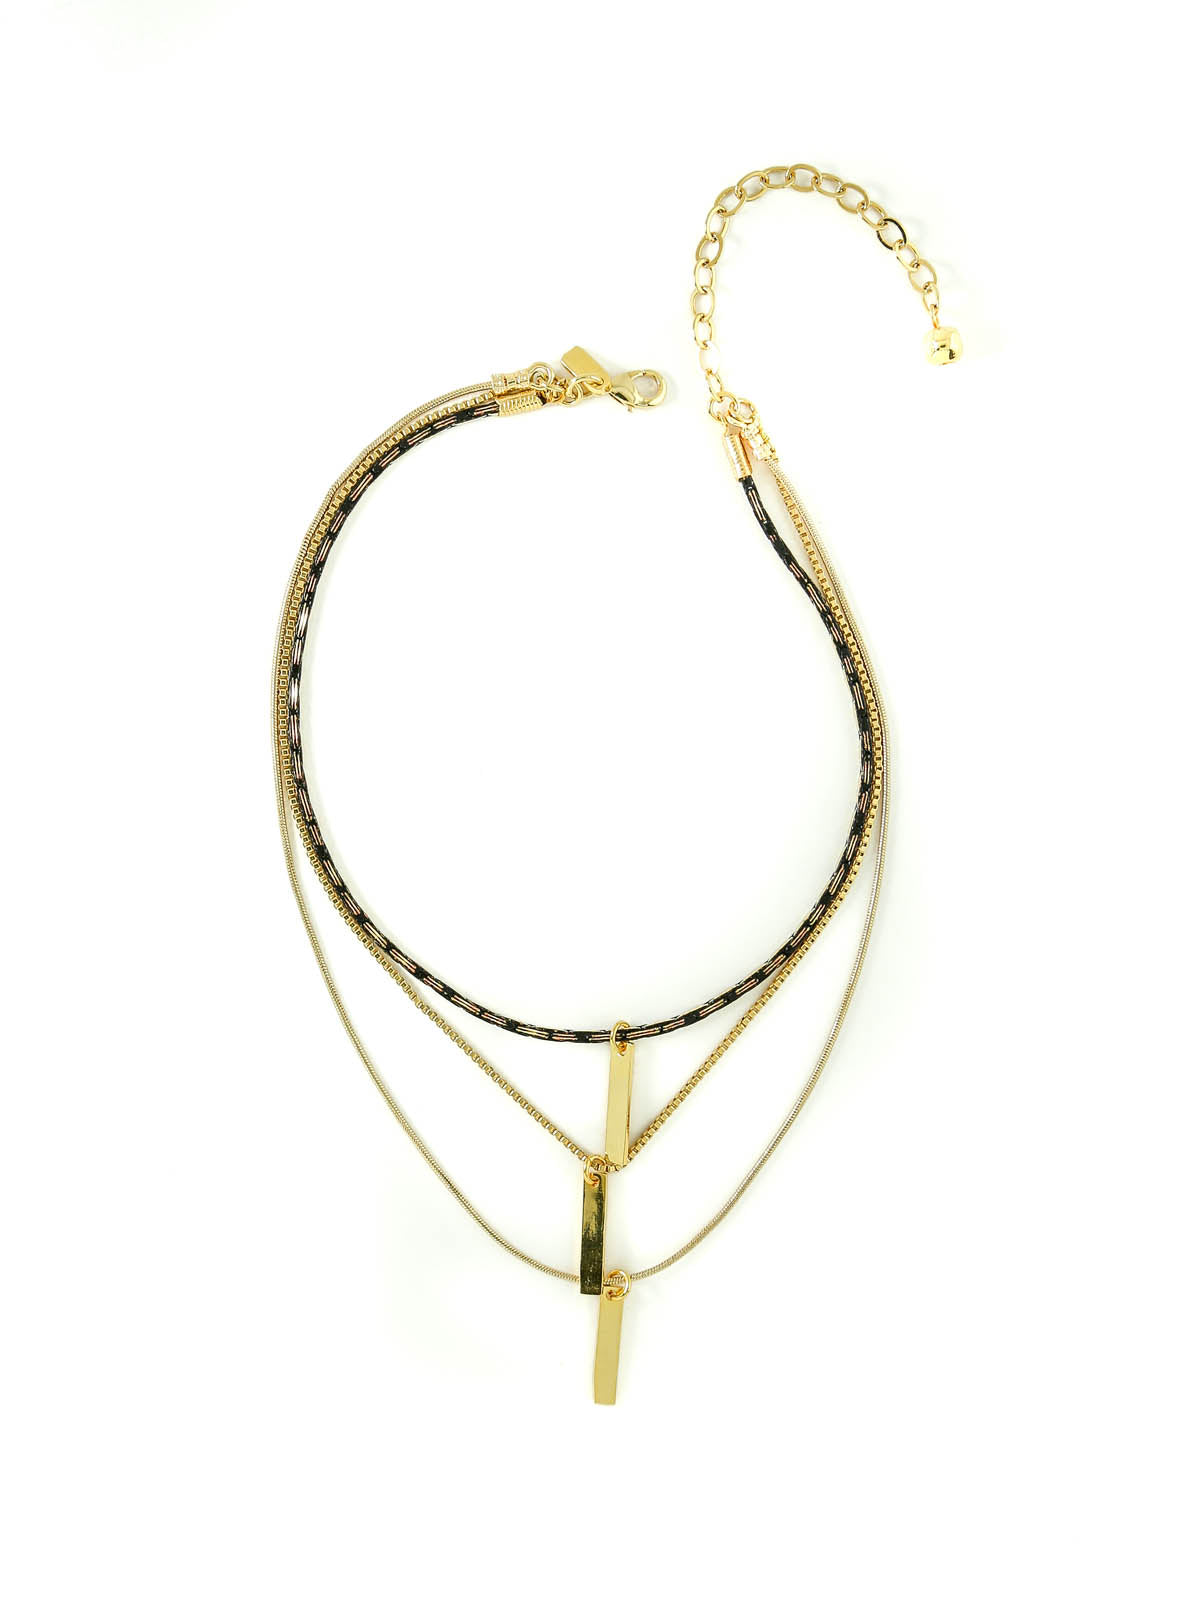 The Snake Chain Layered Necklace